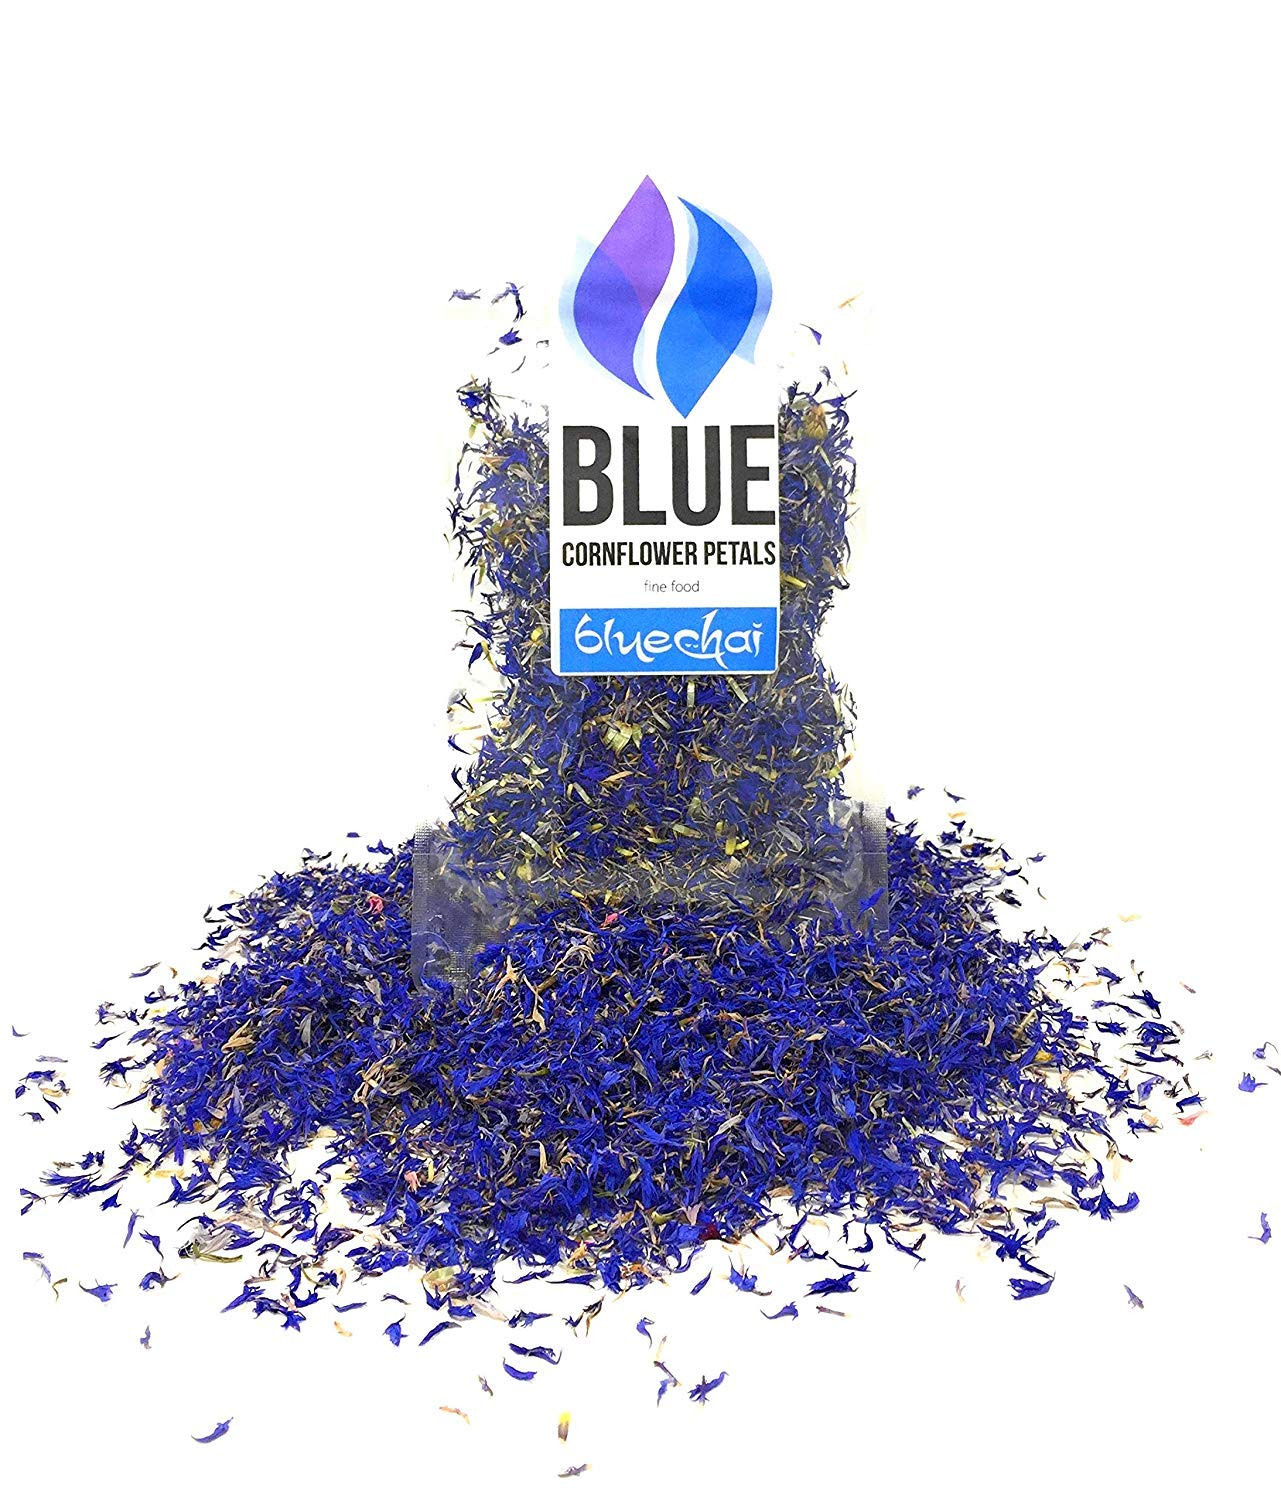 Pure Blue Cornflower Petals - 100% Organic, Dried, Grown in Germany - Natural Organically Grown Herbal Flowers for For Homemade Lattes, Tea Blends, Bath Salts, Gifts, Crafts (Centaurea cyanus)